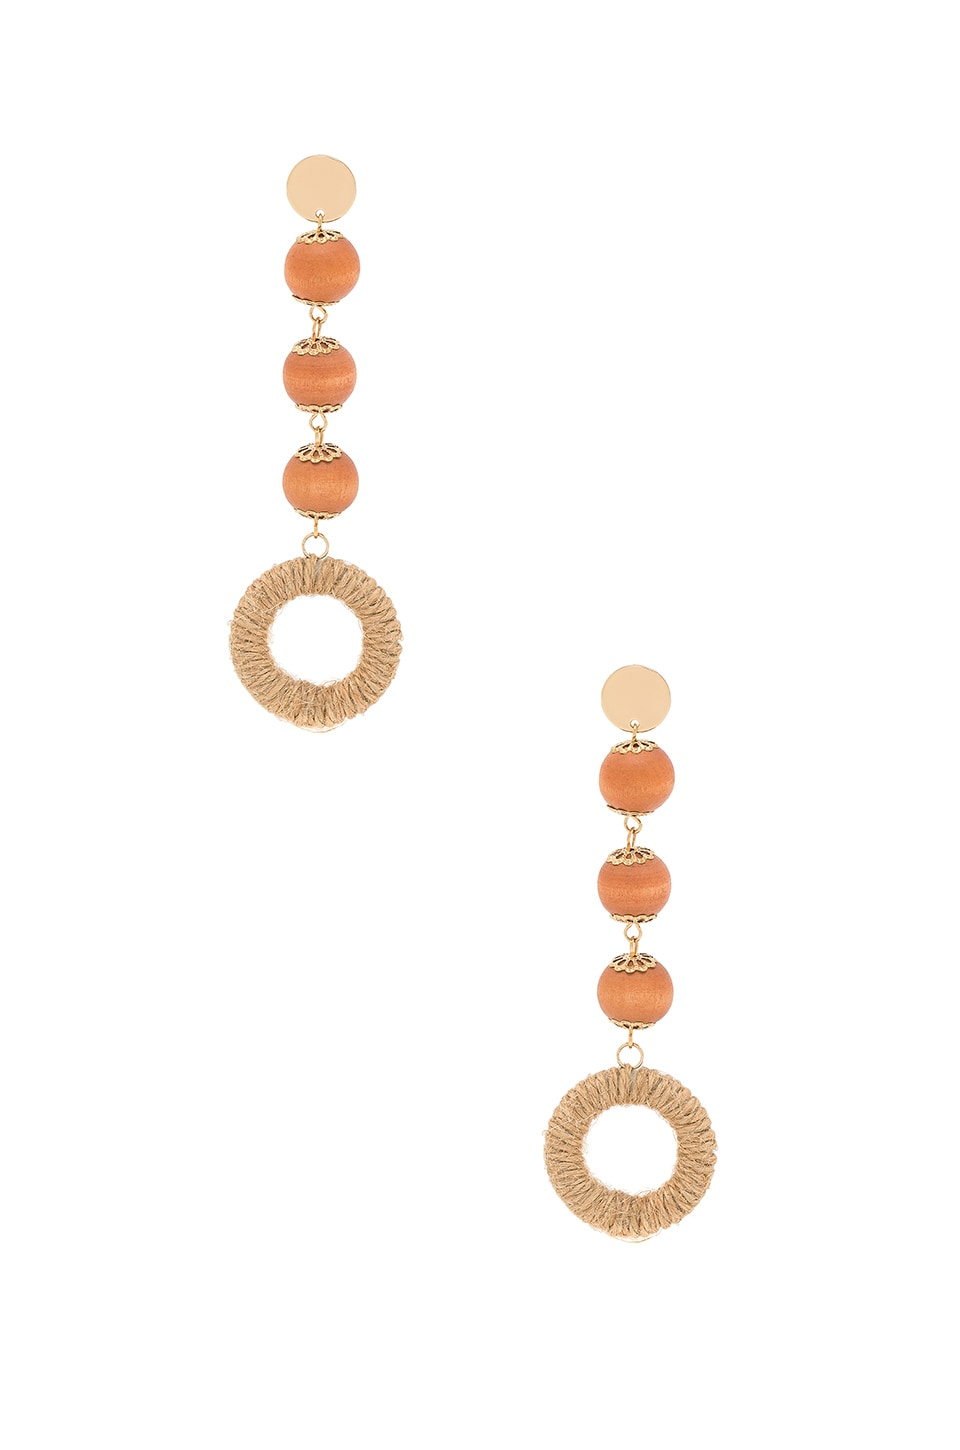 8 OTHER REASONS BRAIDED DUSTER EARRING